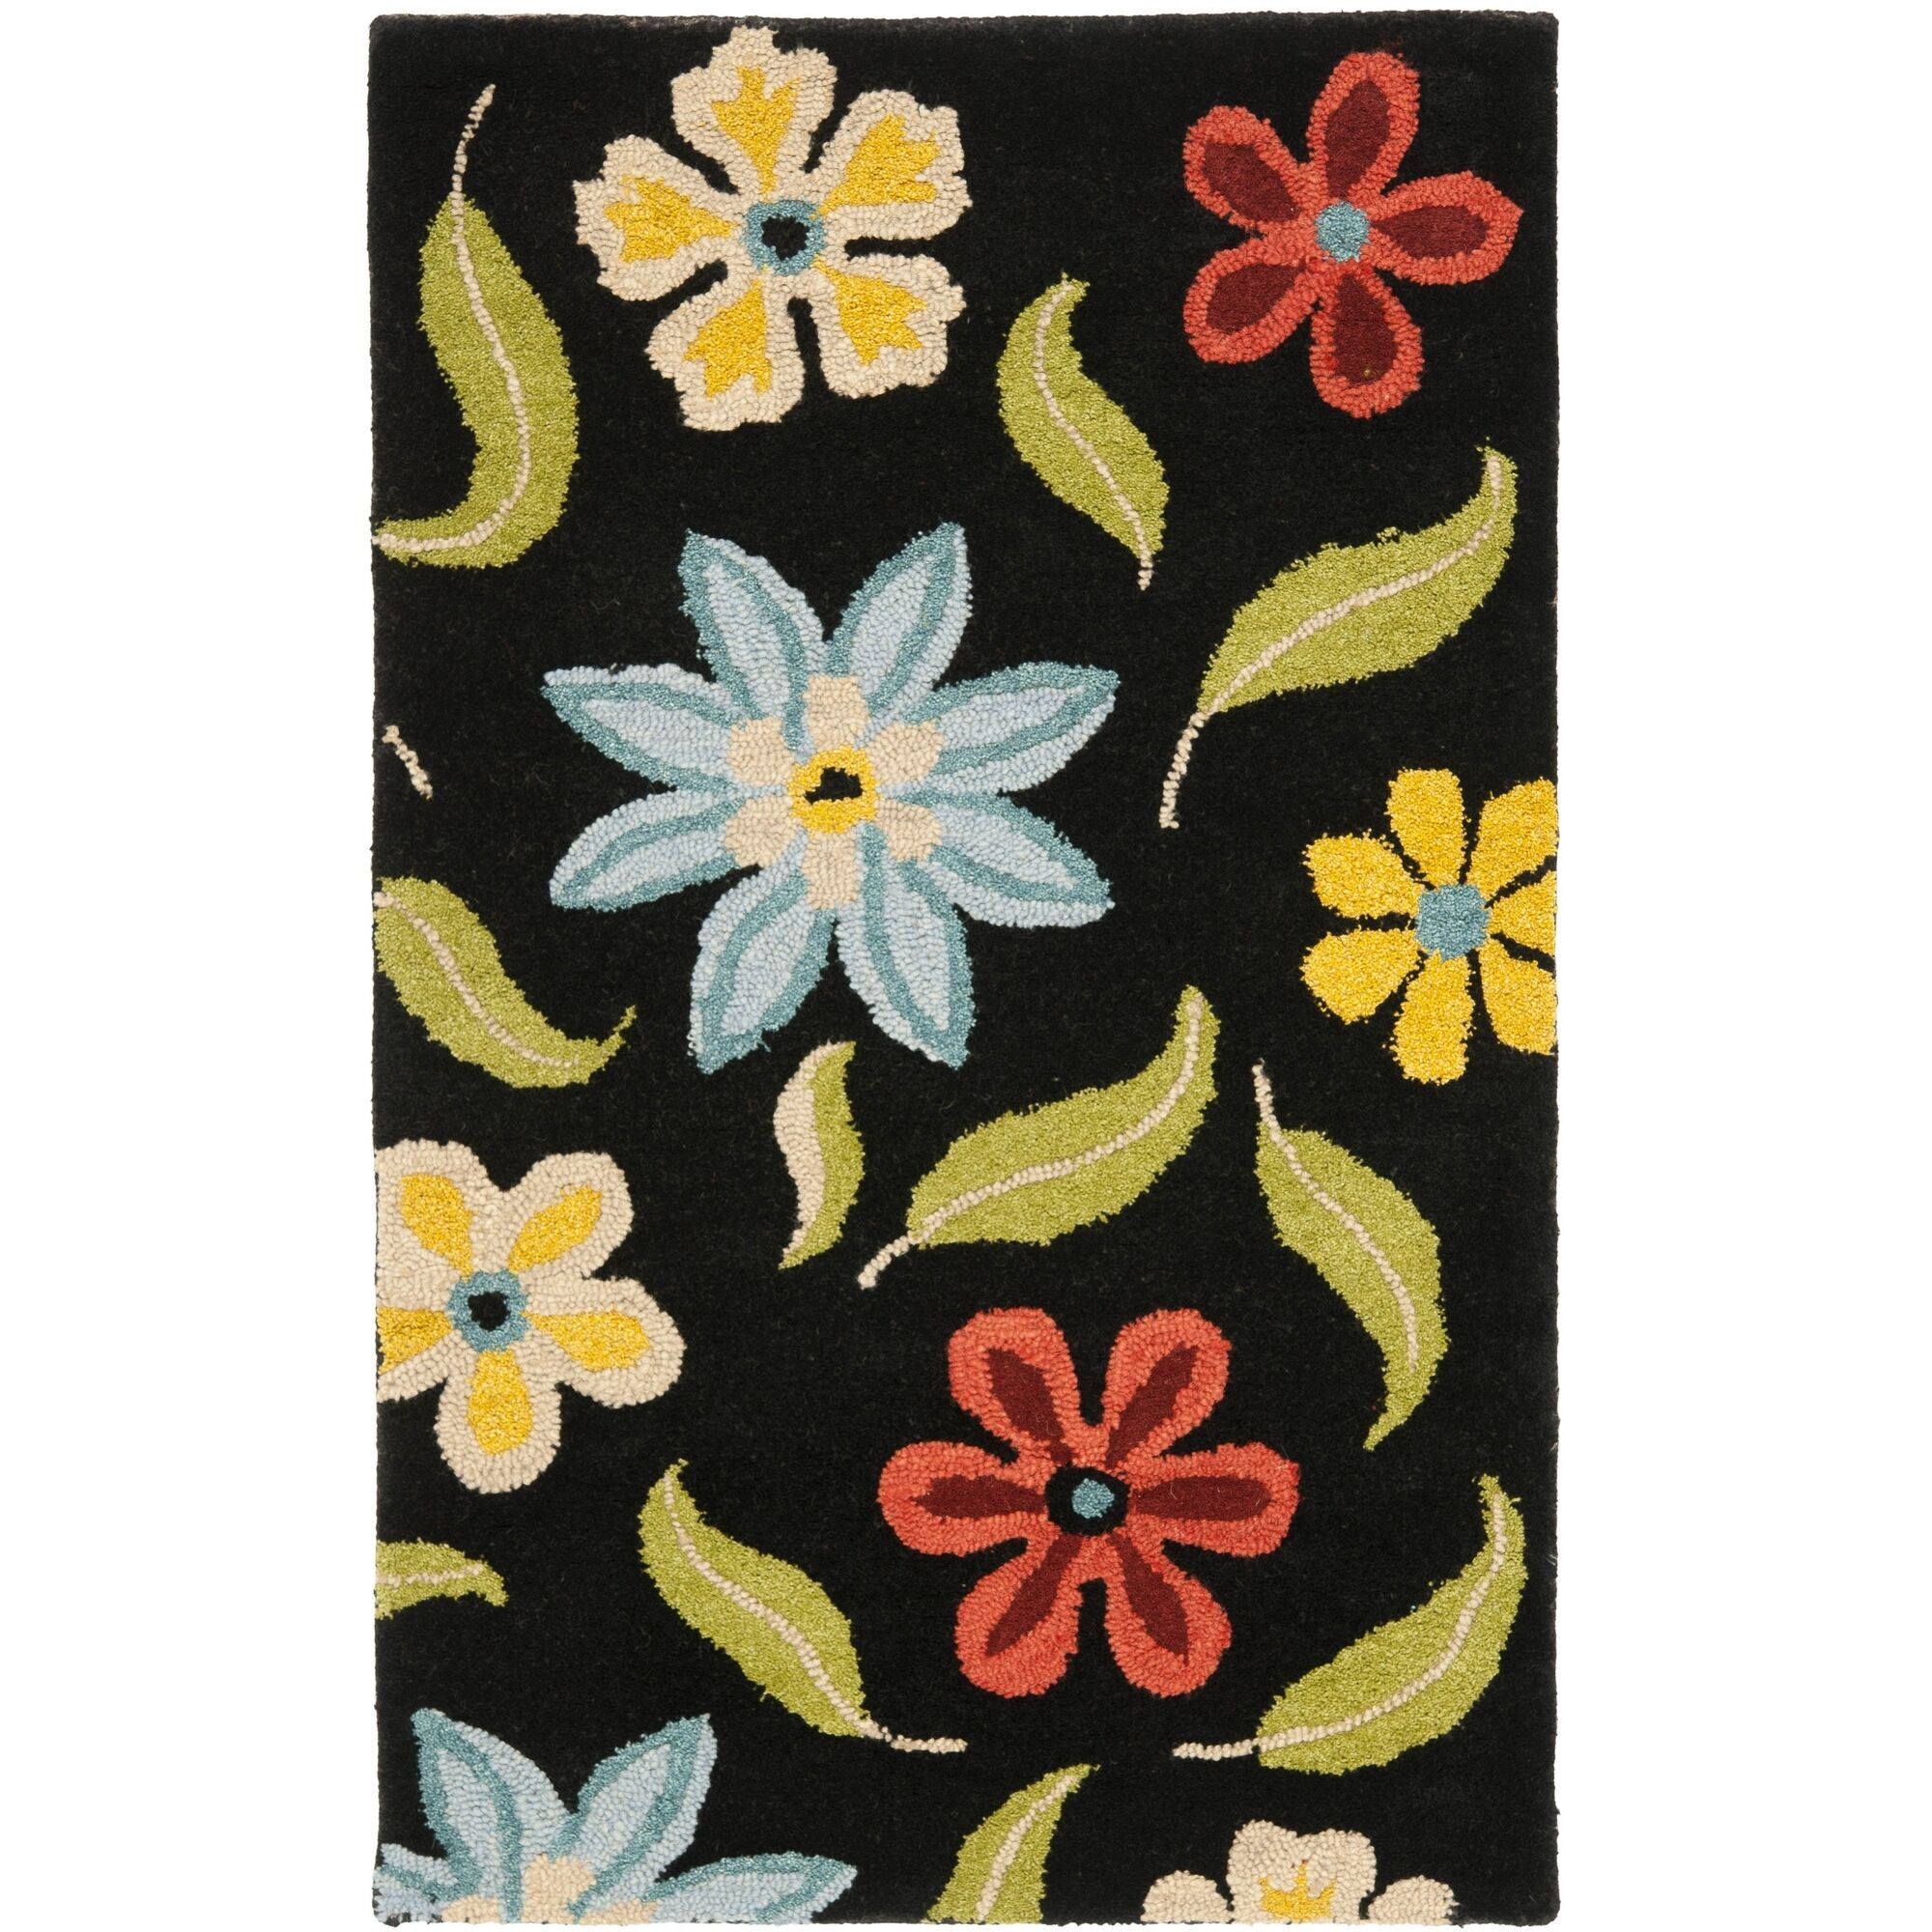 Ross Black Floral Area Rug Rug Size: Rectangle 8' x 10'